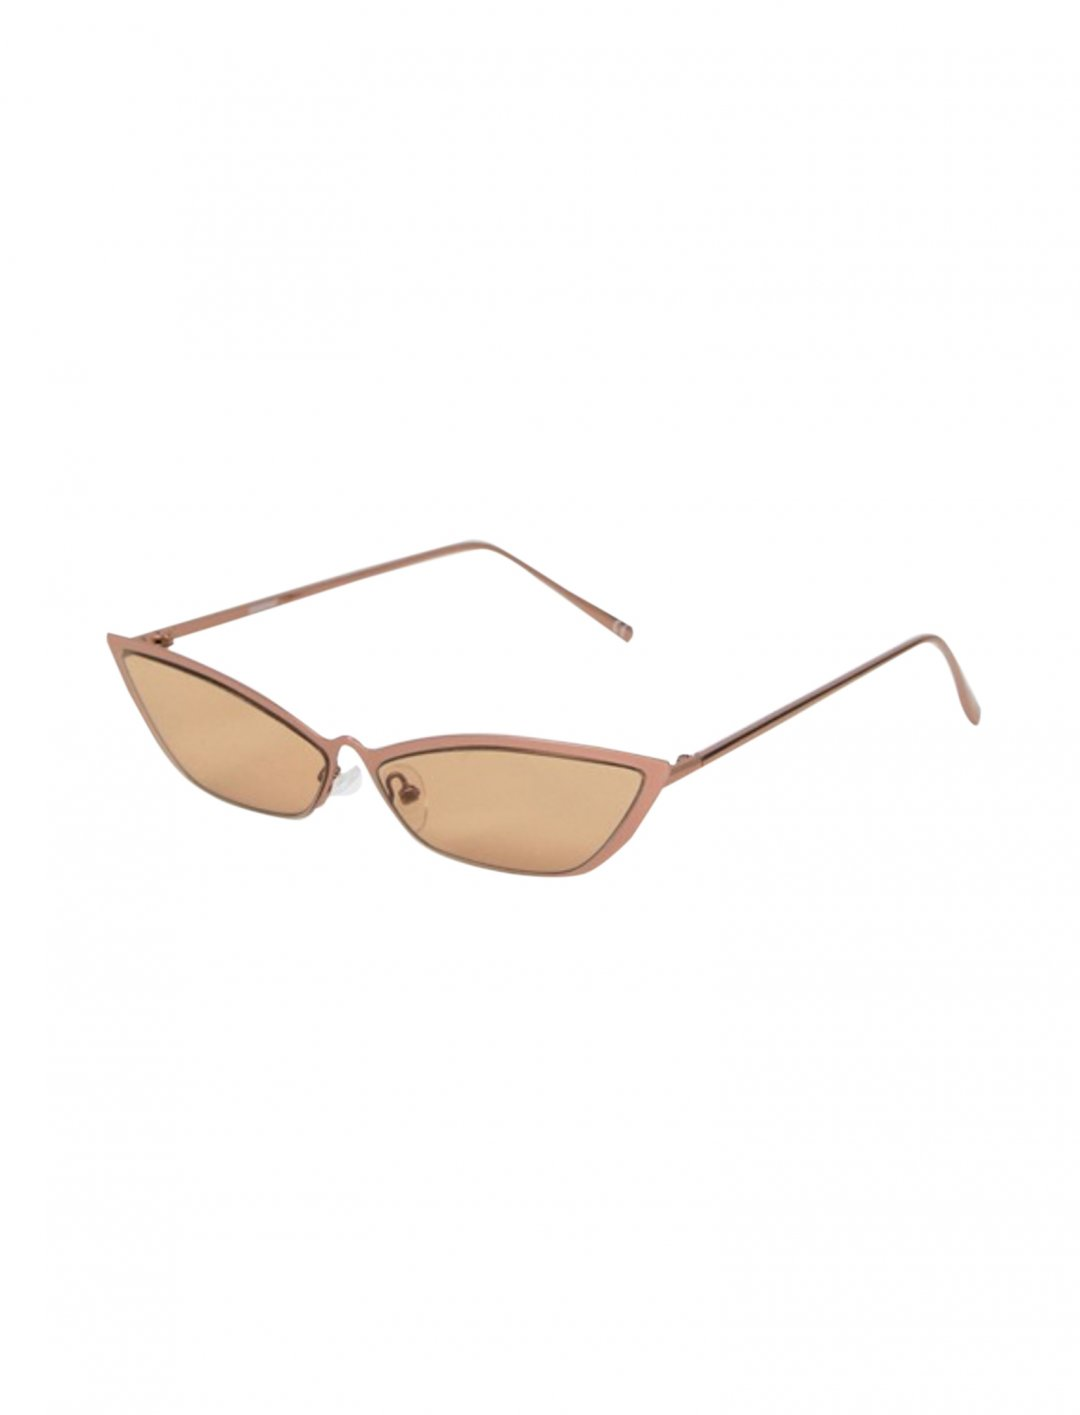 "Tiny Sunglasses {""id"":16,""product_section_id"":1,""name"":""Accessories"",""order"":15} ASOS DESIGN"